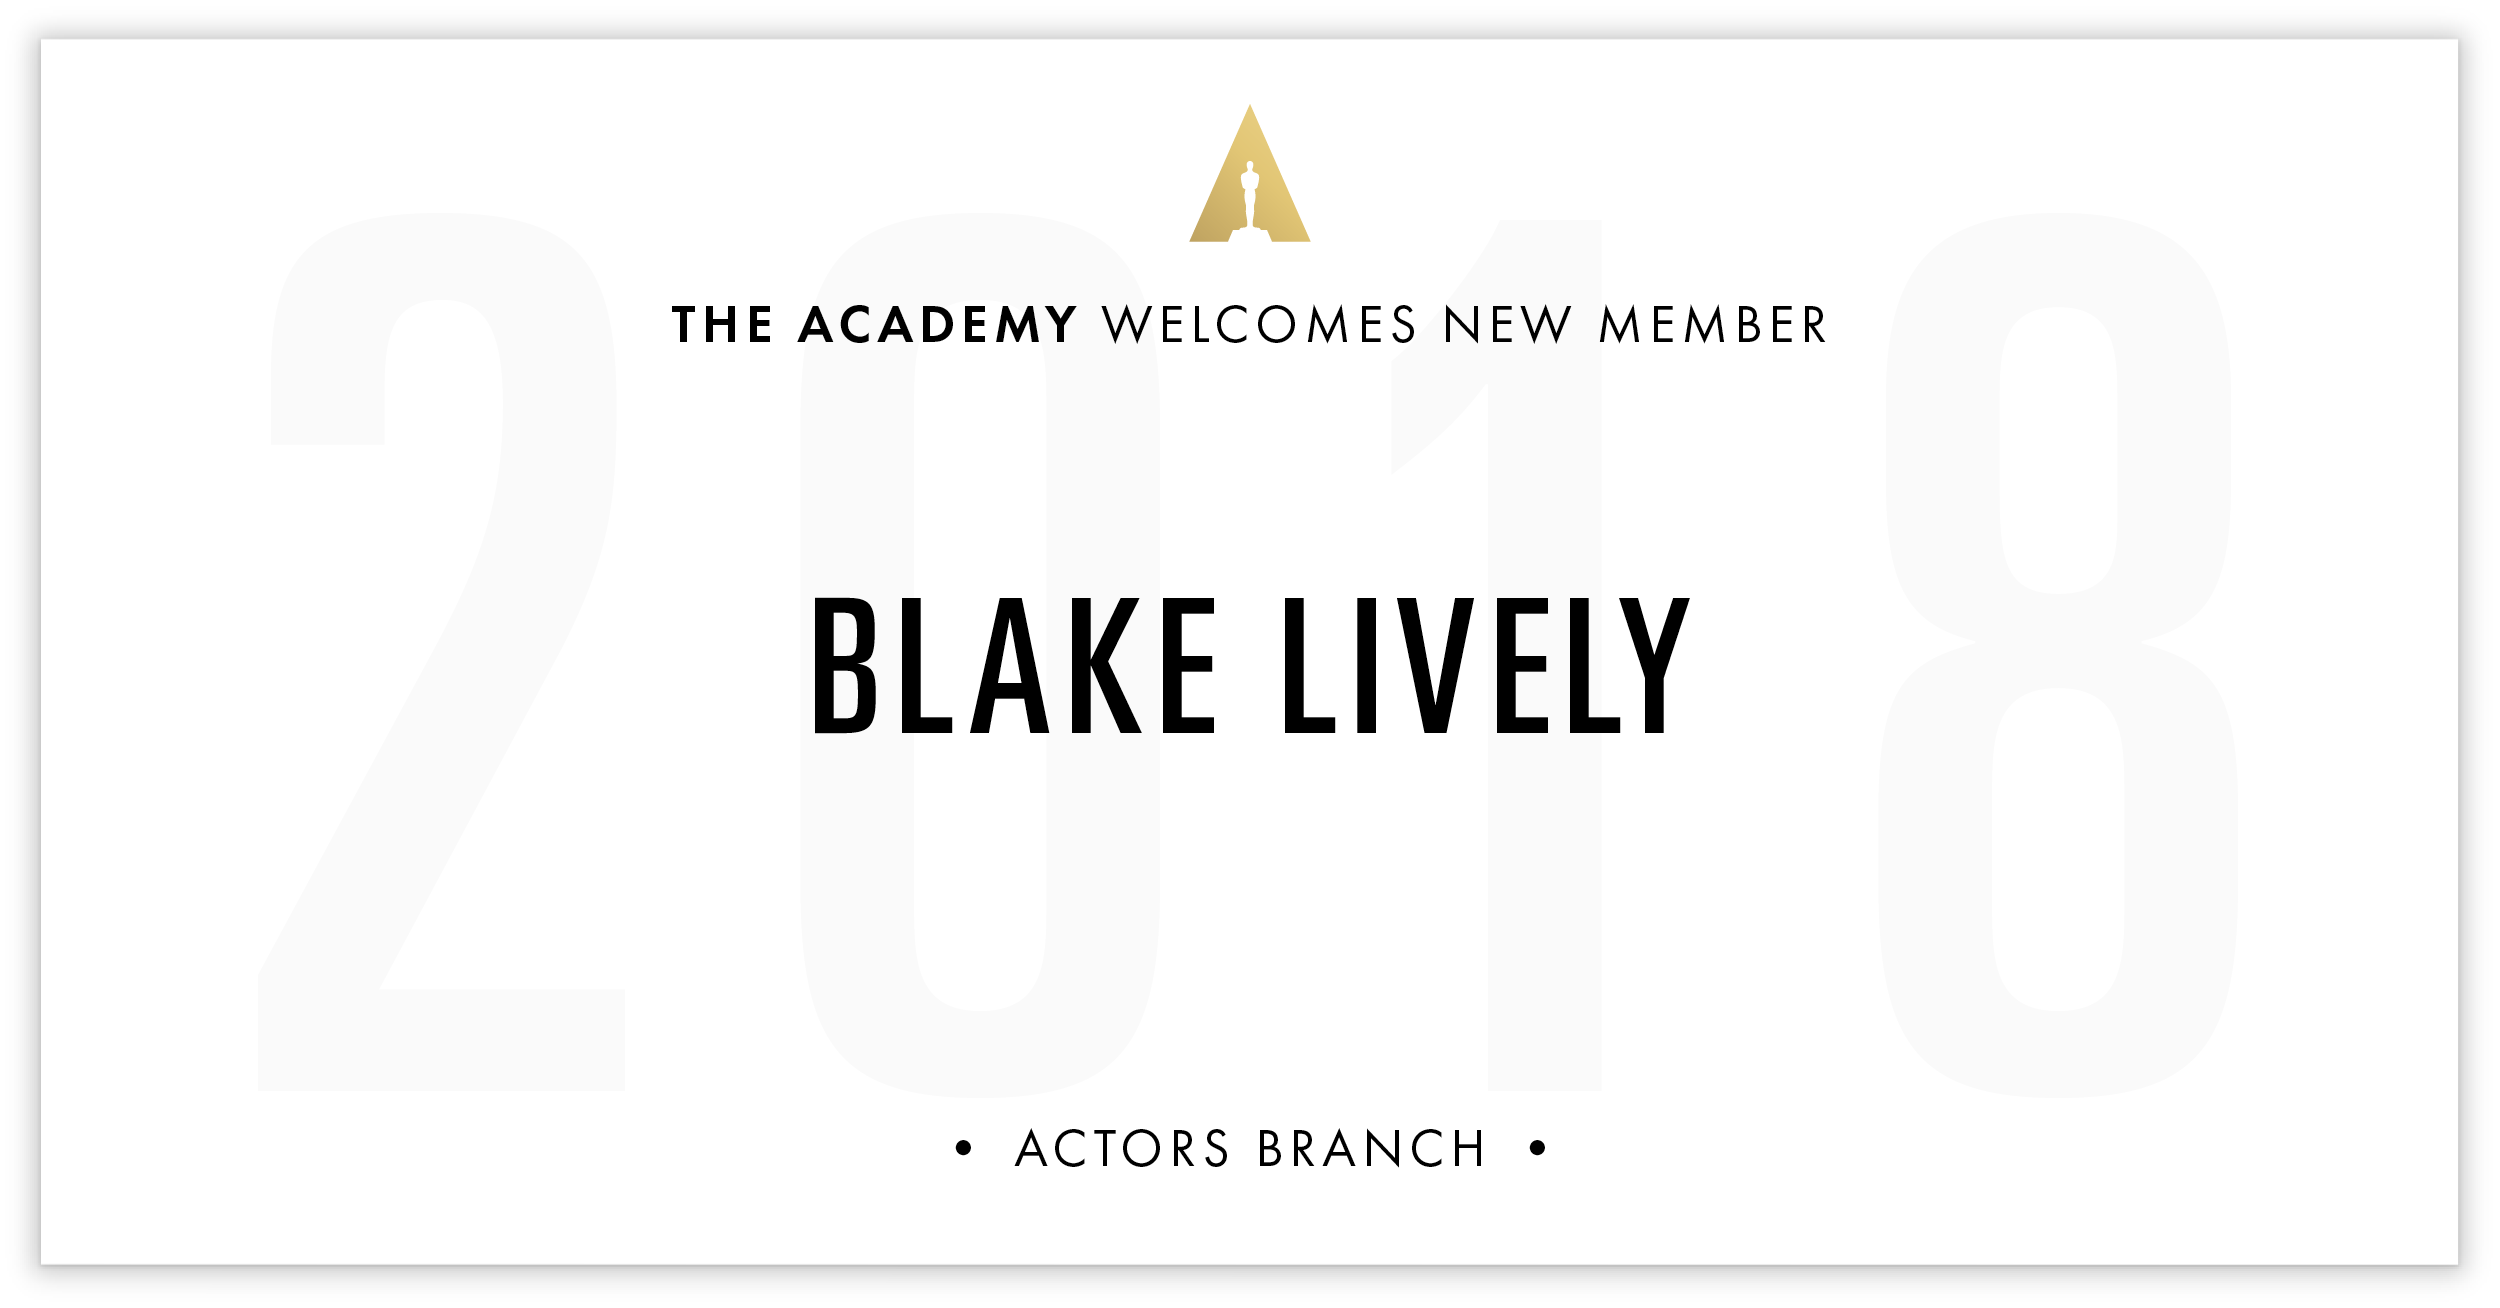 Blake Lively is invited!